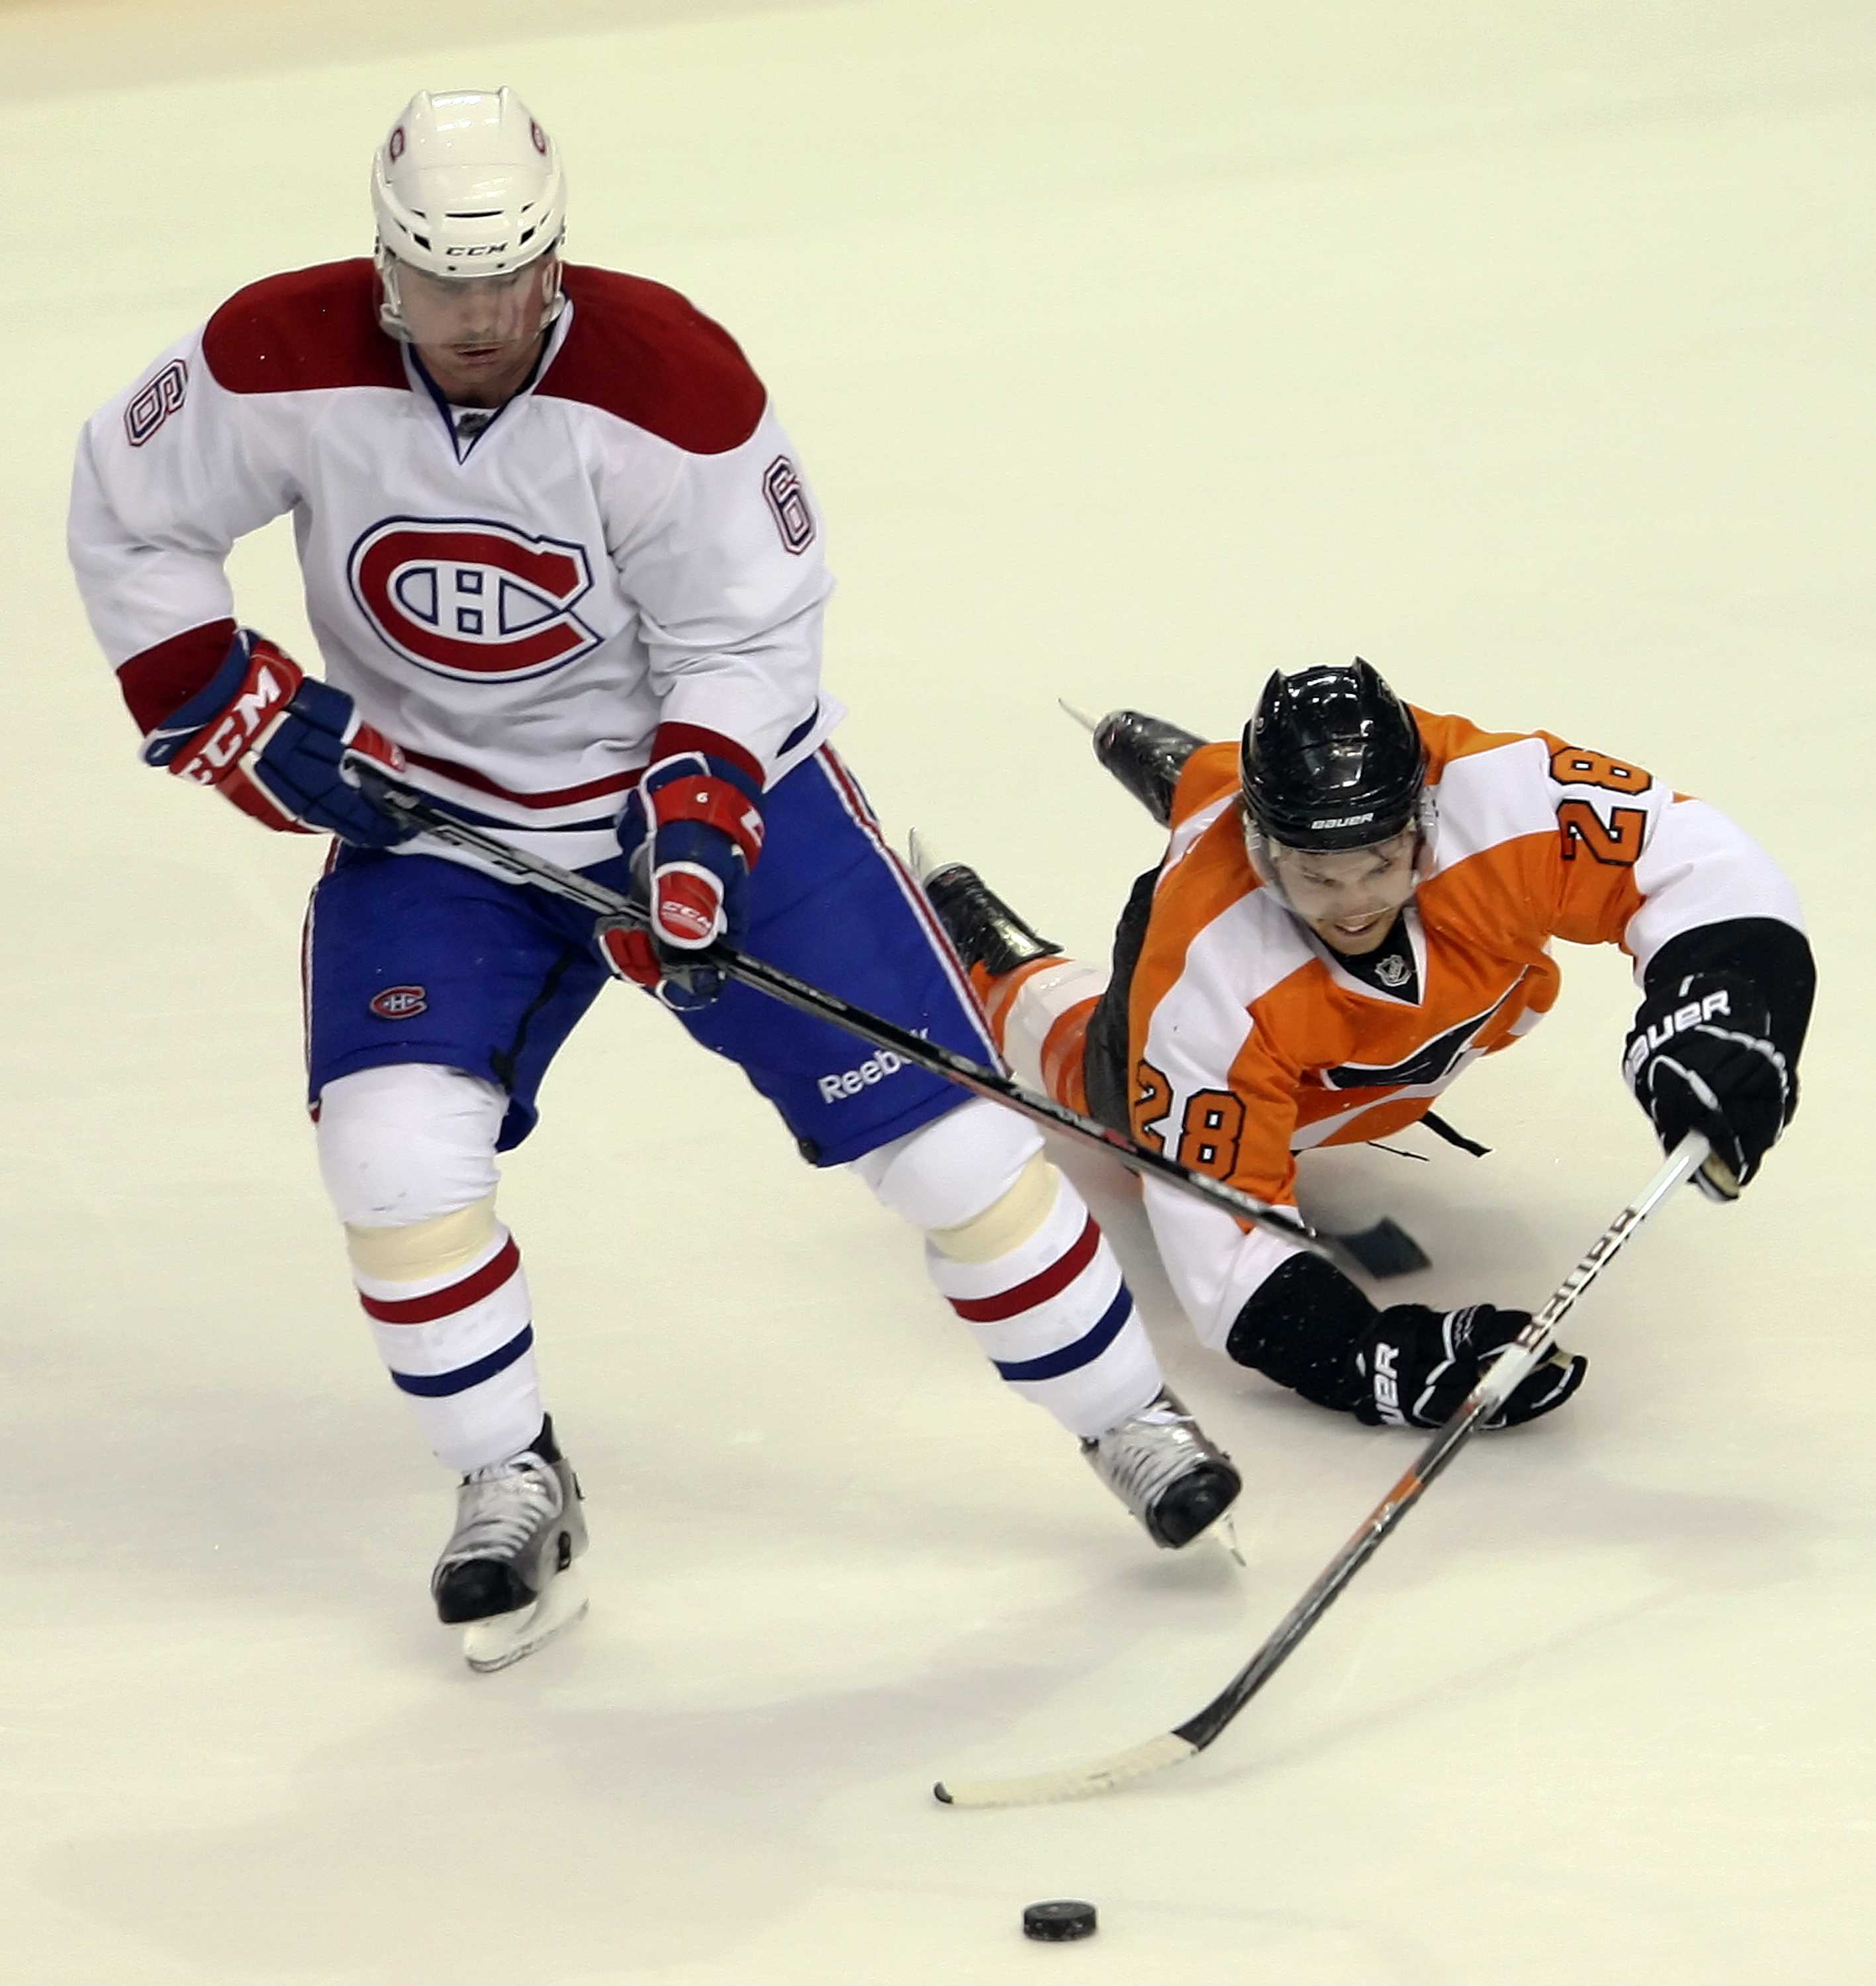 Philadelphia Flyers' Claude Giroux dives past Montreal Canadeins' Jaroslav Spacel for the puck during the second period at the Wells Fargo Center in Philadelphia, Pennsylvania, Monday, November 22, 2010. (Steven M. Falk/Philadelphia Daily News/MCT)